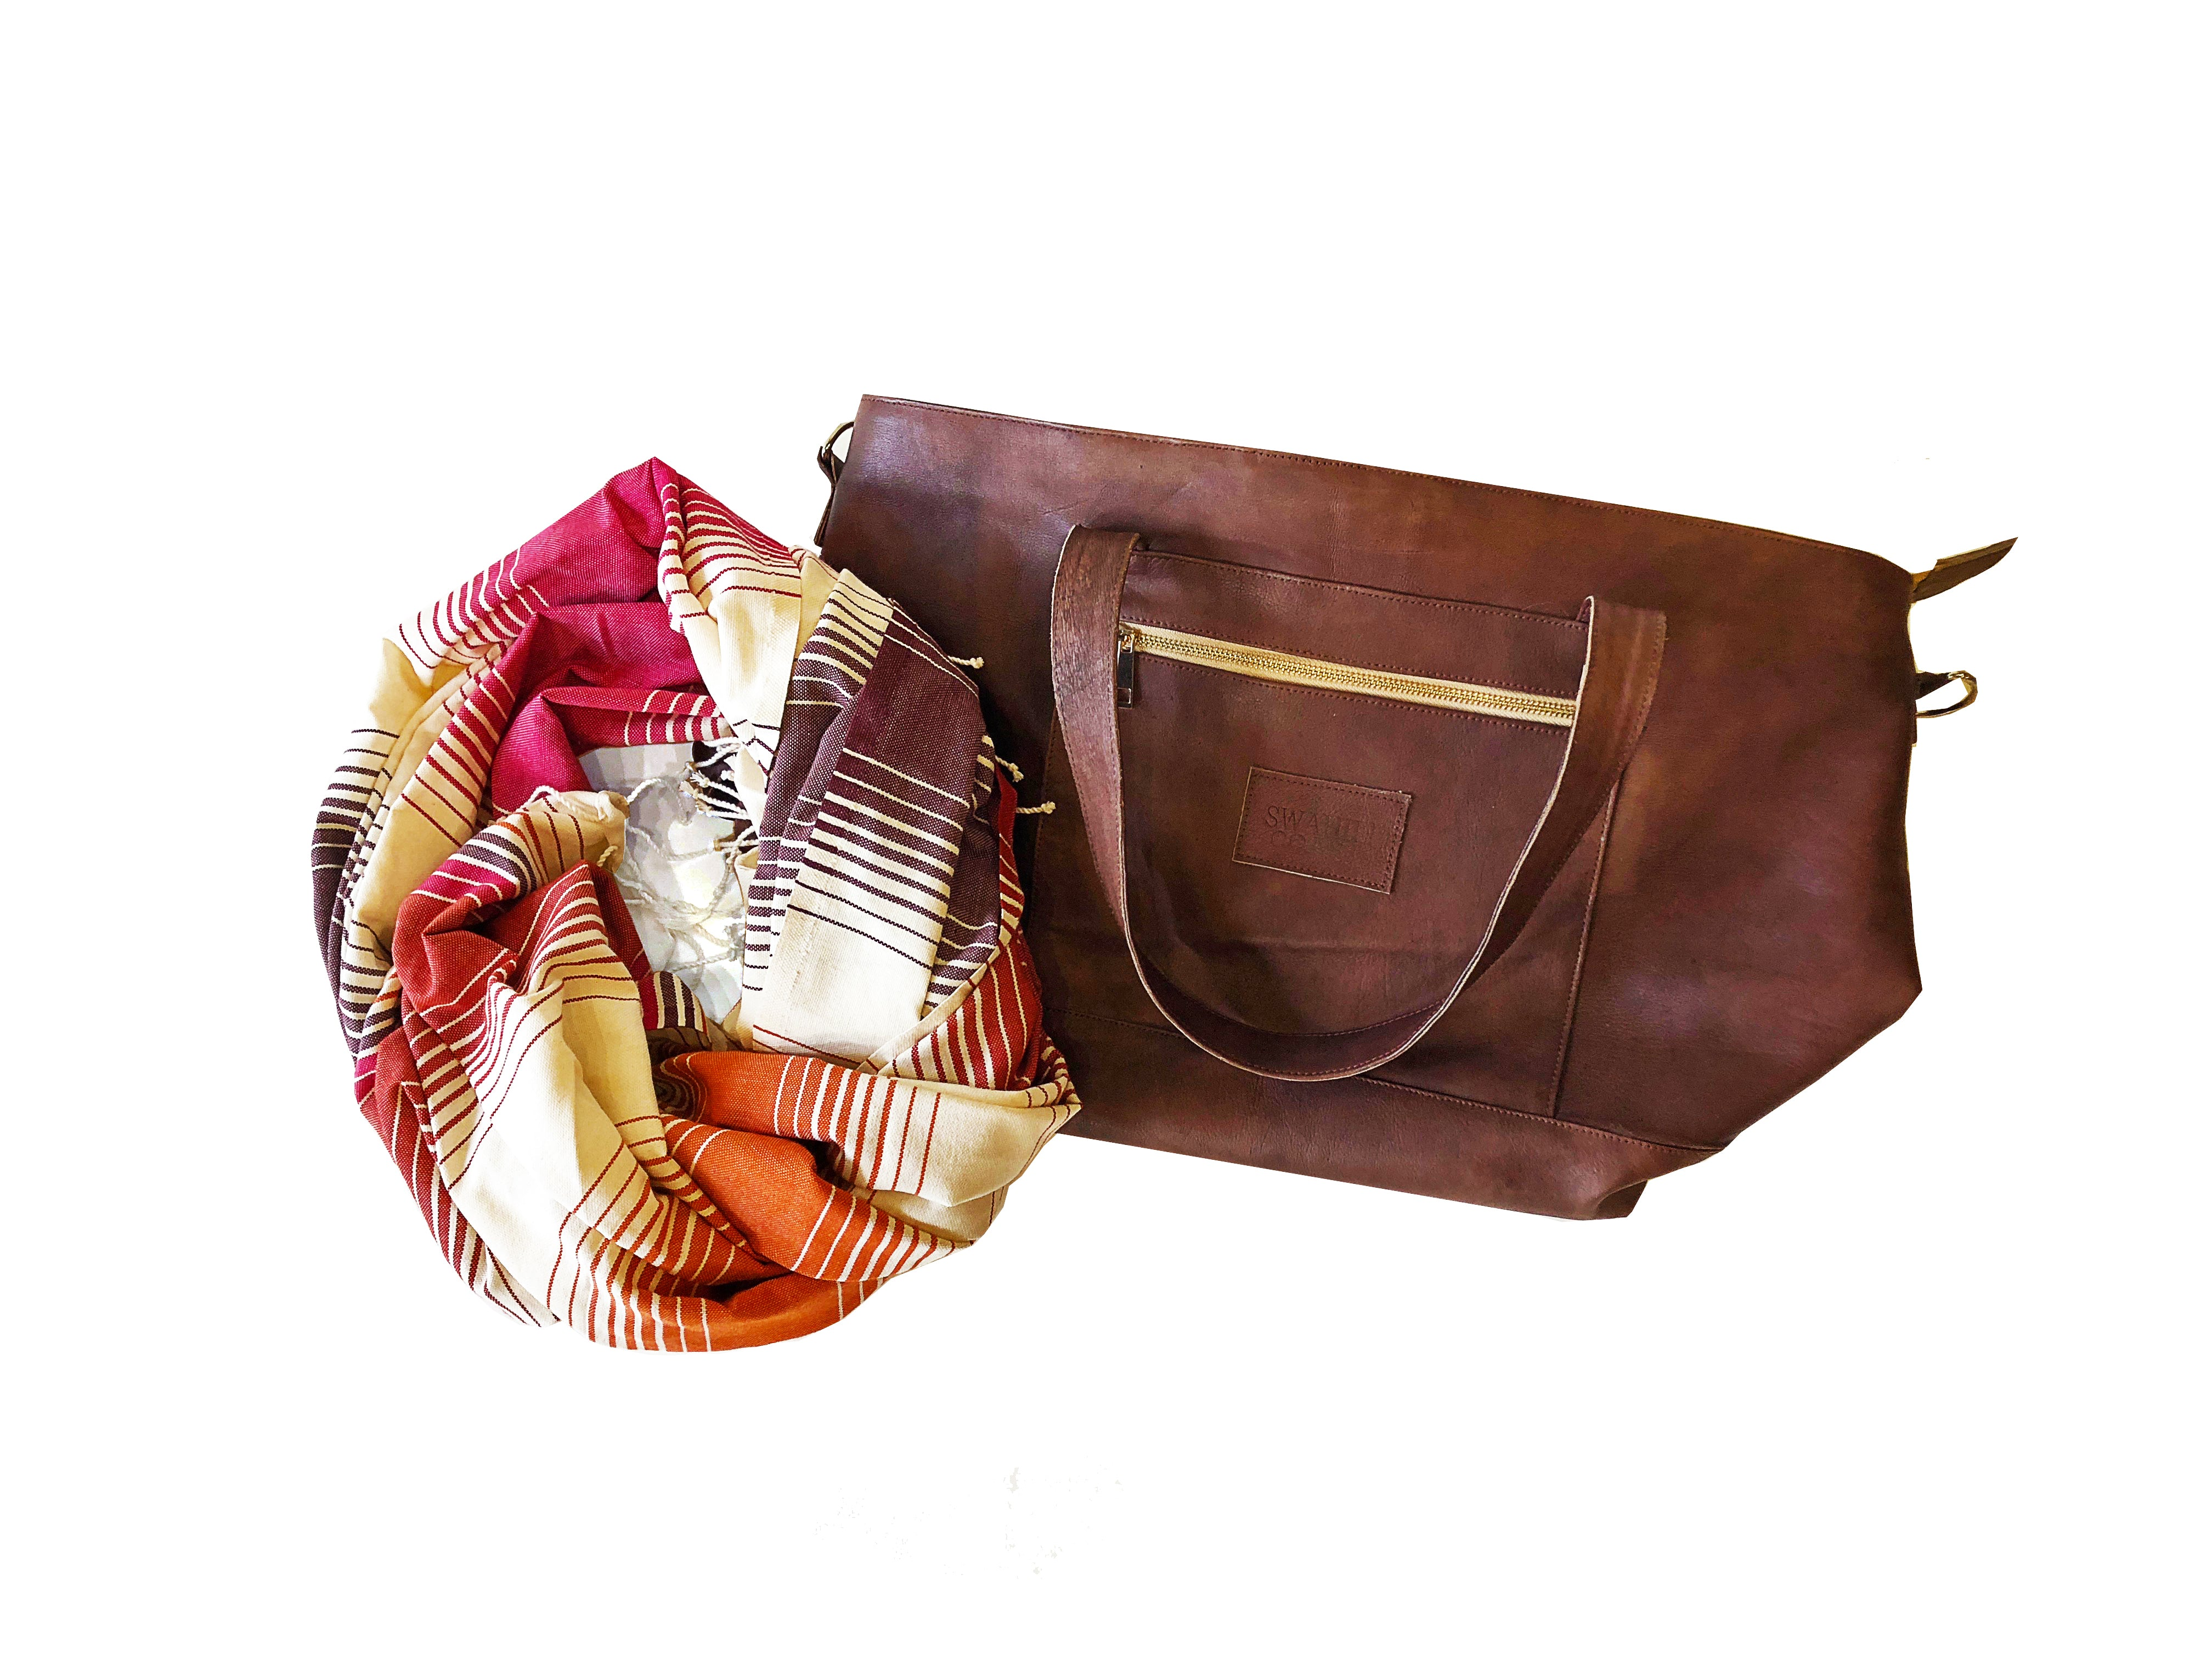 Fair trade bag ethically handmade by empowered artisans in East Africa.